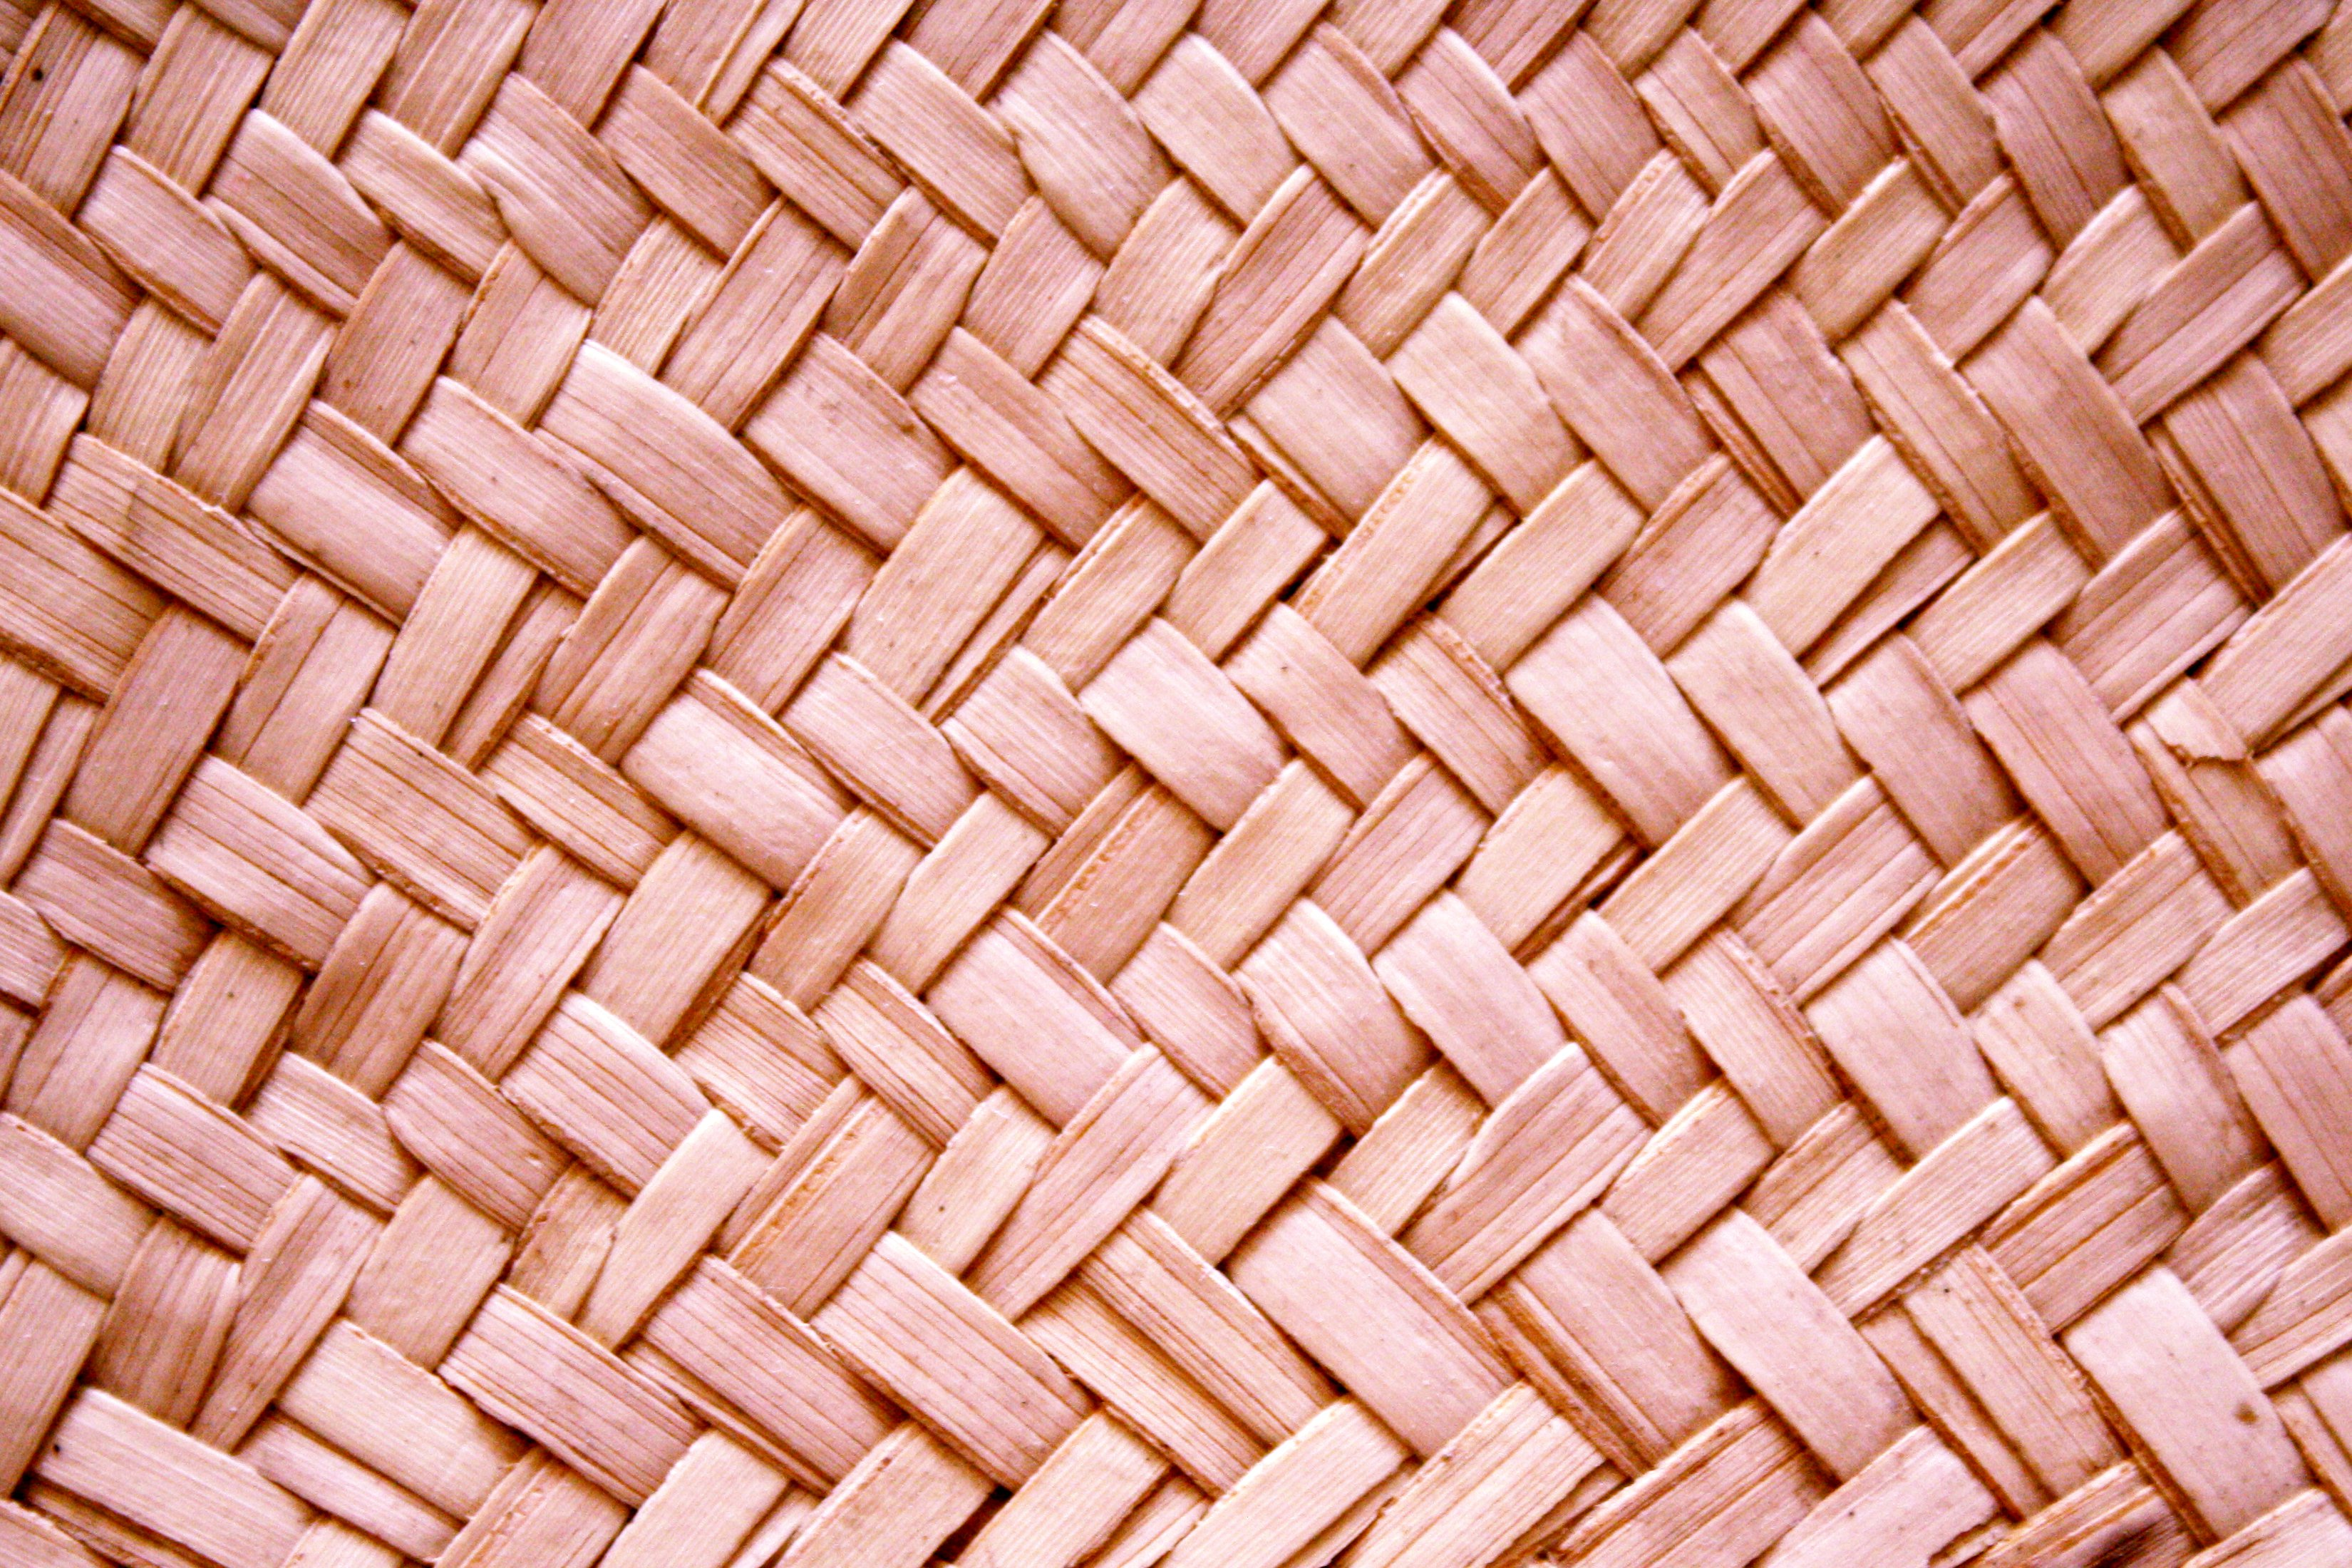 pink woven straw texture picture free photograph. Black Bedroom Furniture Sets. Home Design Ideas